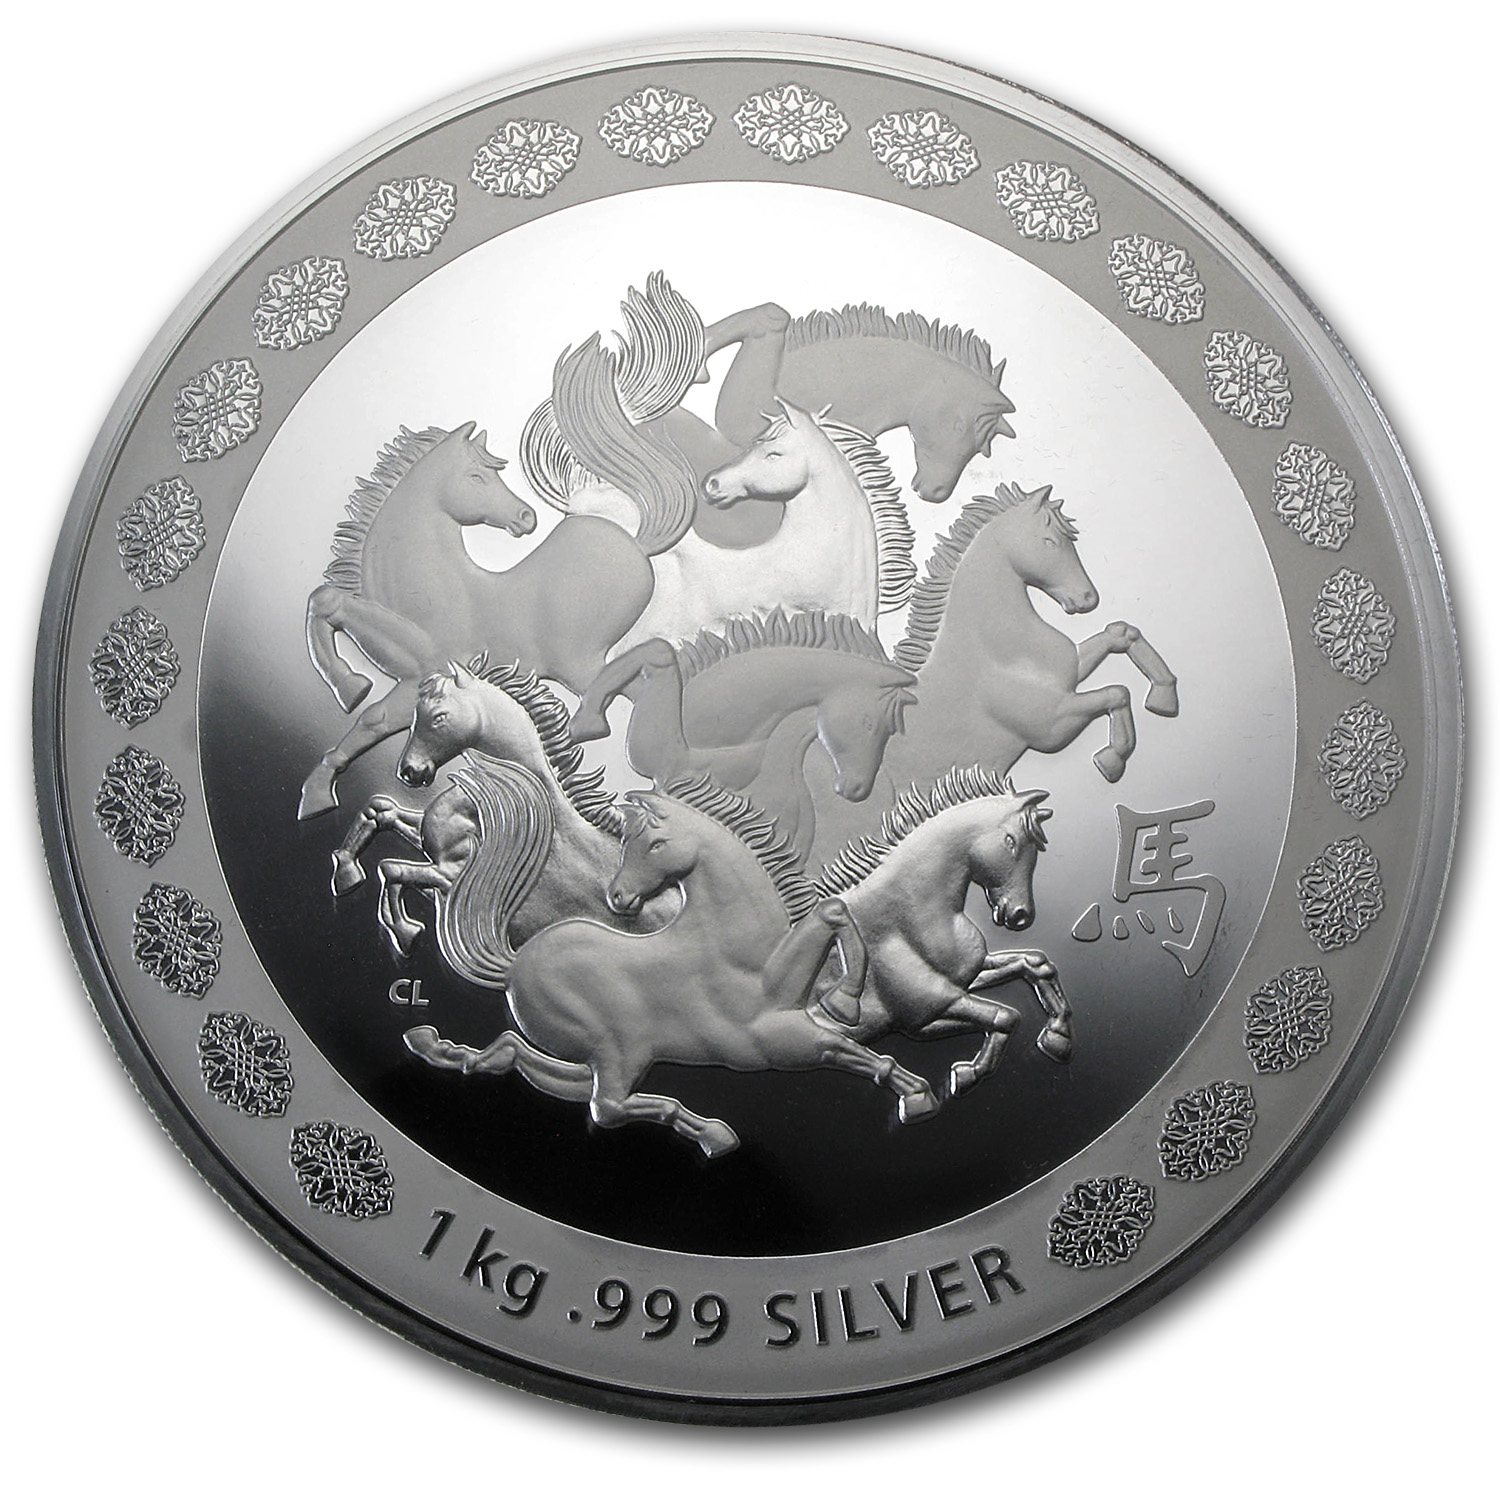 2014 Australia kilo Silver Year of the Horse Proof-Like